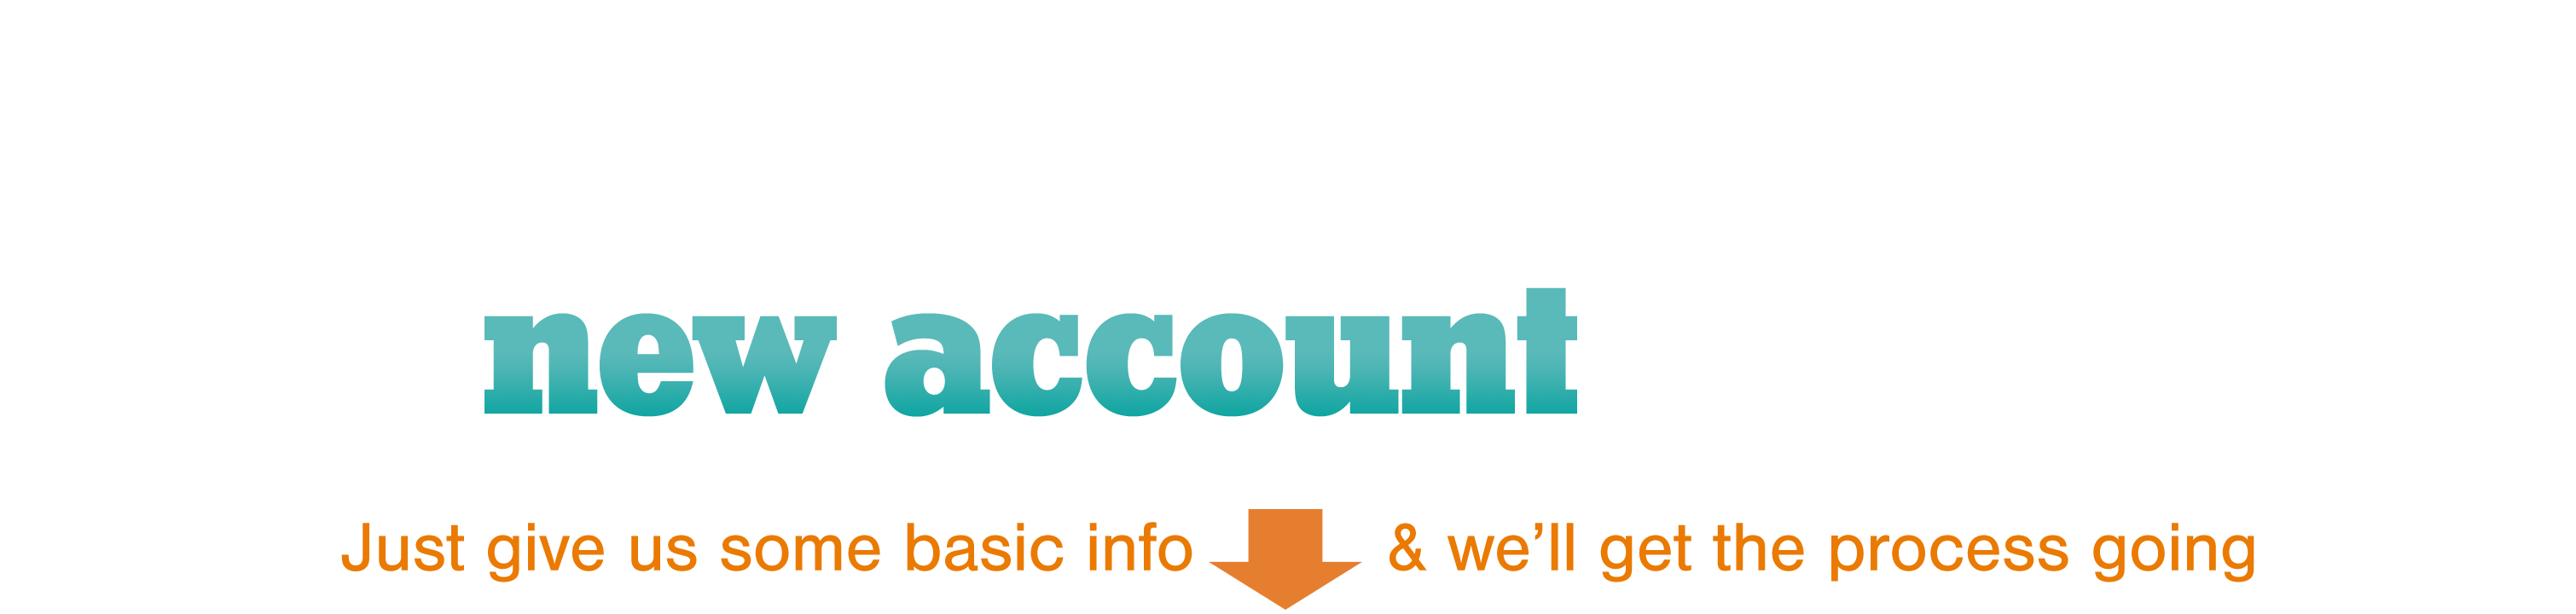 Start the new account application process online by clicking the link below.